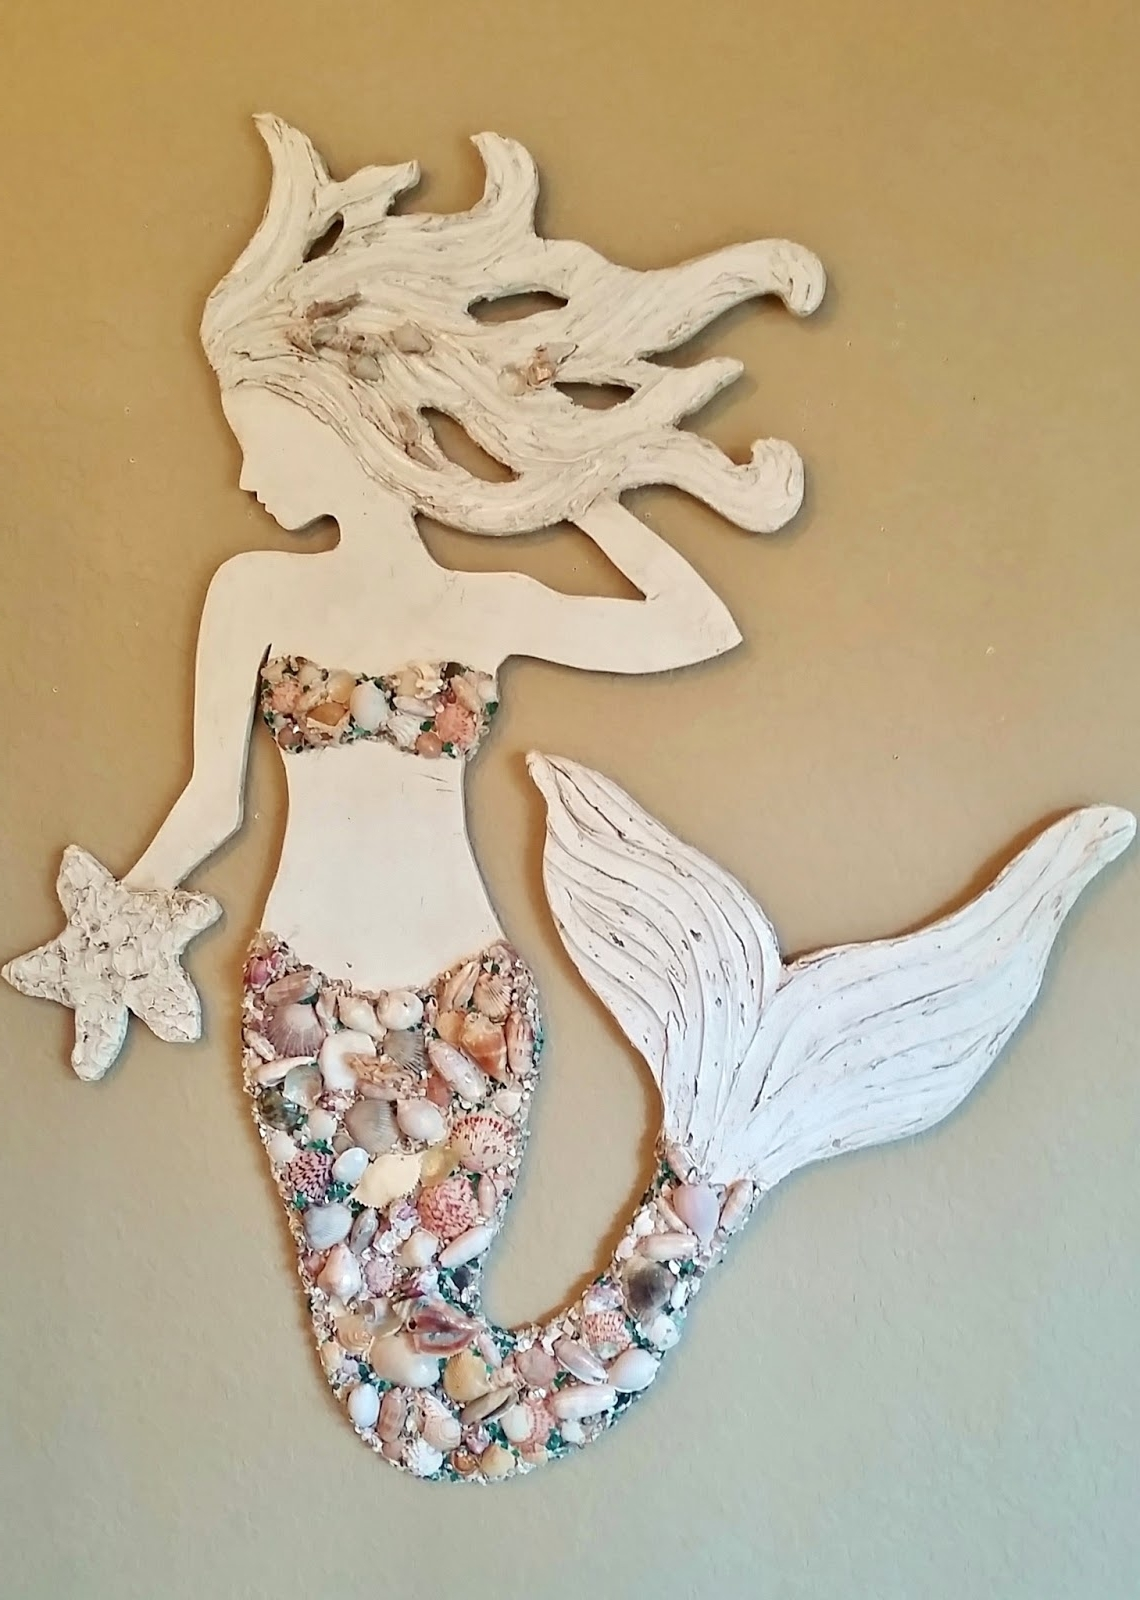 Wall Art With Seashells Pertaining To Most Current Mermaid Wall Art New Design, Wood Mermaid Vertical Style Beach Art (View 14 of 15)